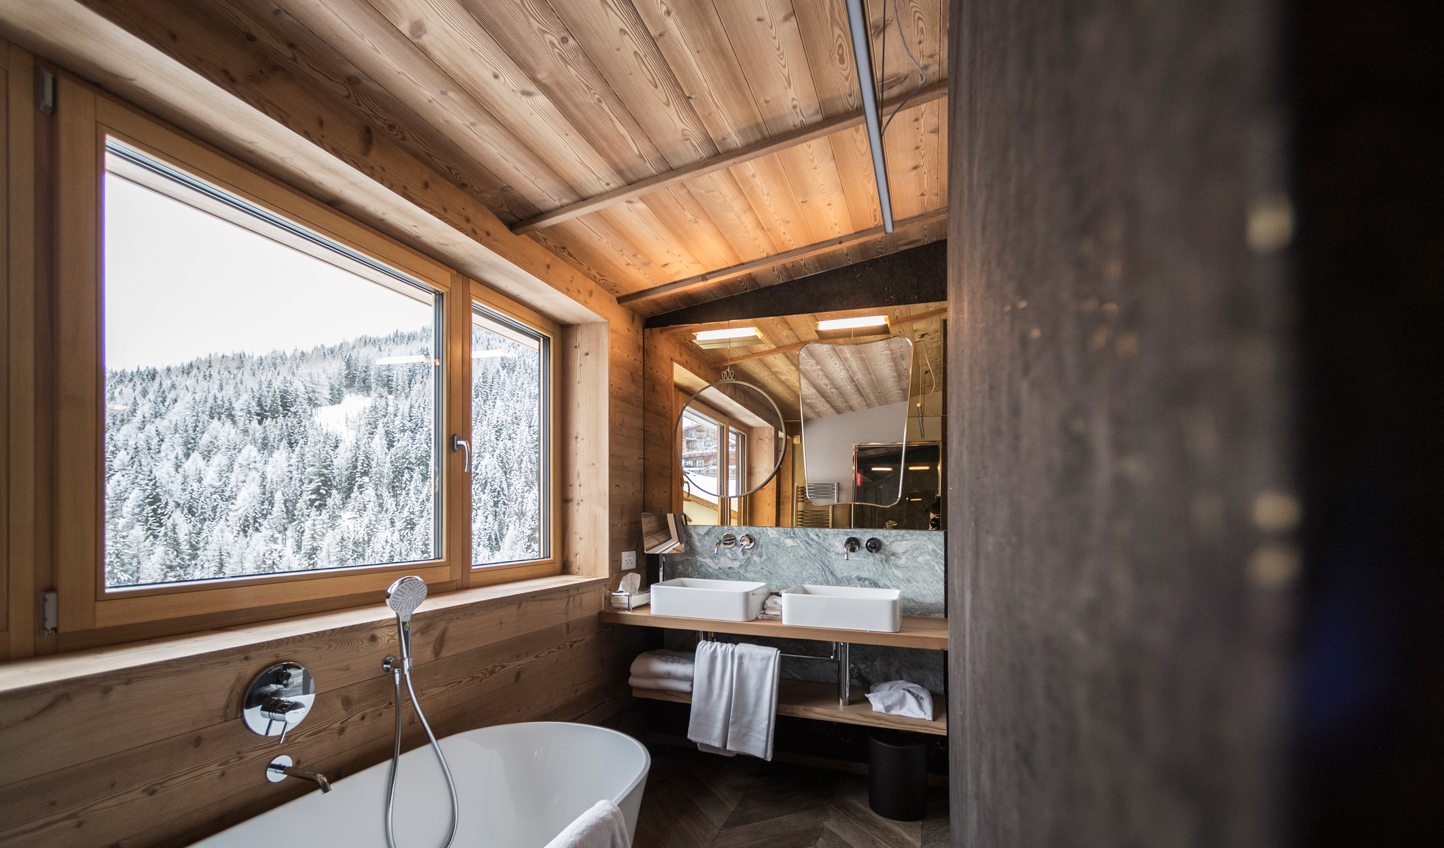 Indulge in a warm bath overlooking the Dolomites